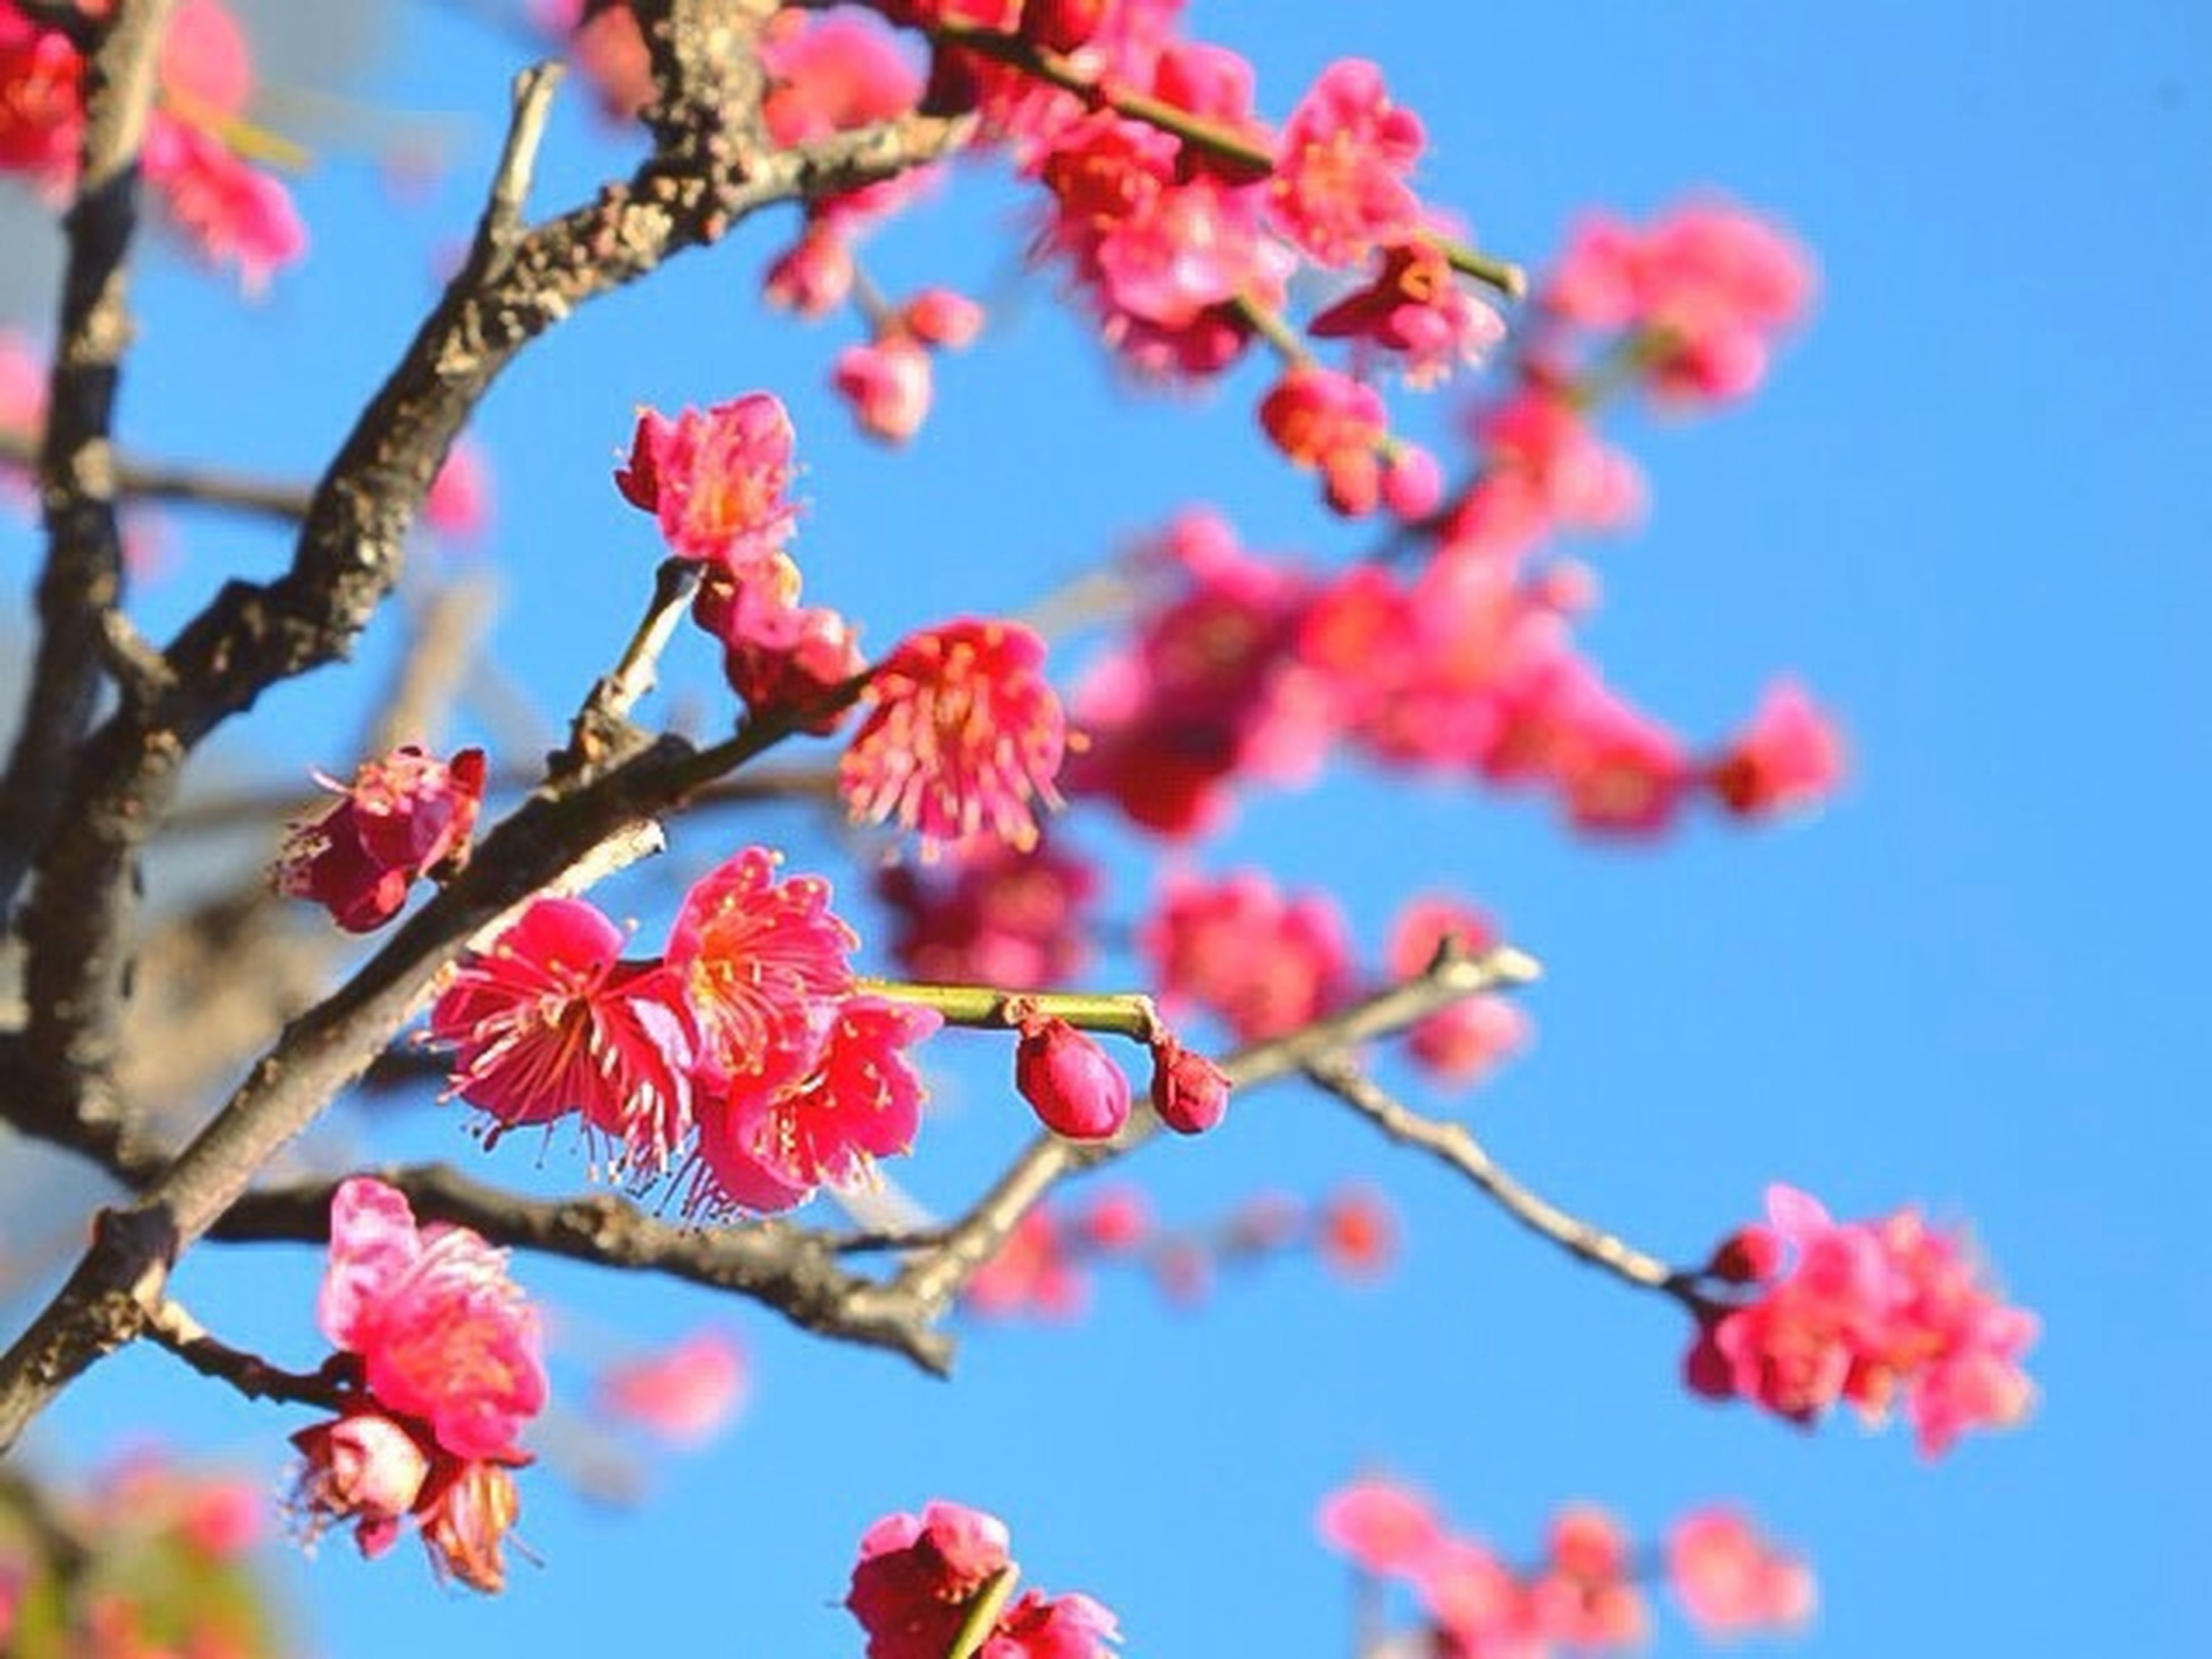 flower, freshness, fragility, growth, branch, beauty in nature, pink color, blossom, petal, low angle view, tree, blooming, nature, cherry blossom, cherry tree, focus on foreground, clear sky, springtime, in bloom, close-up